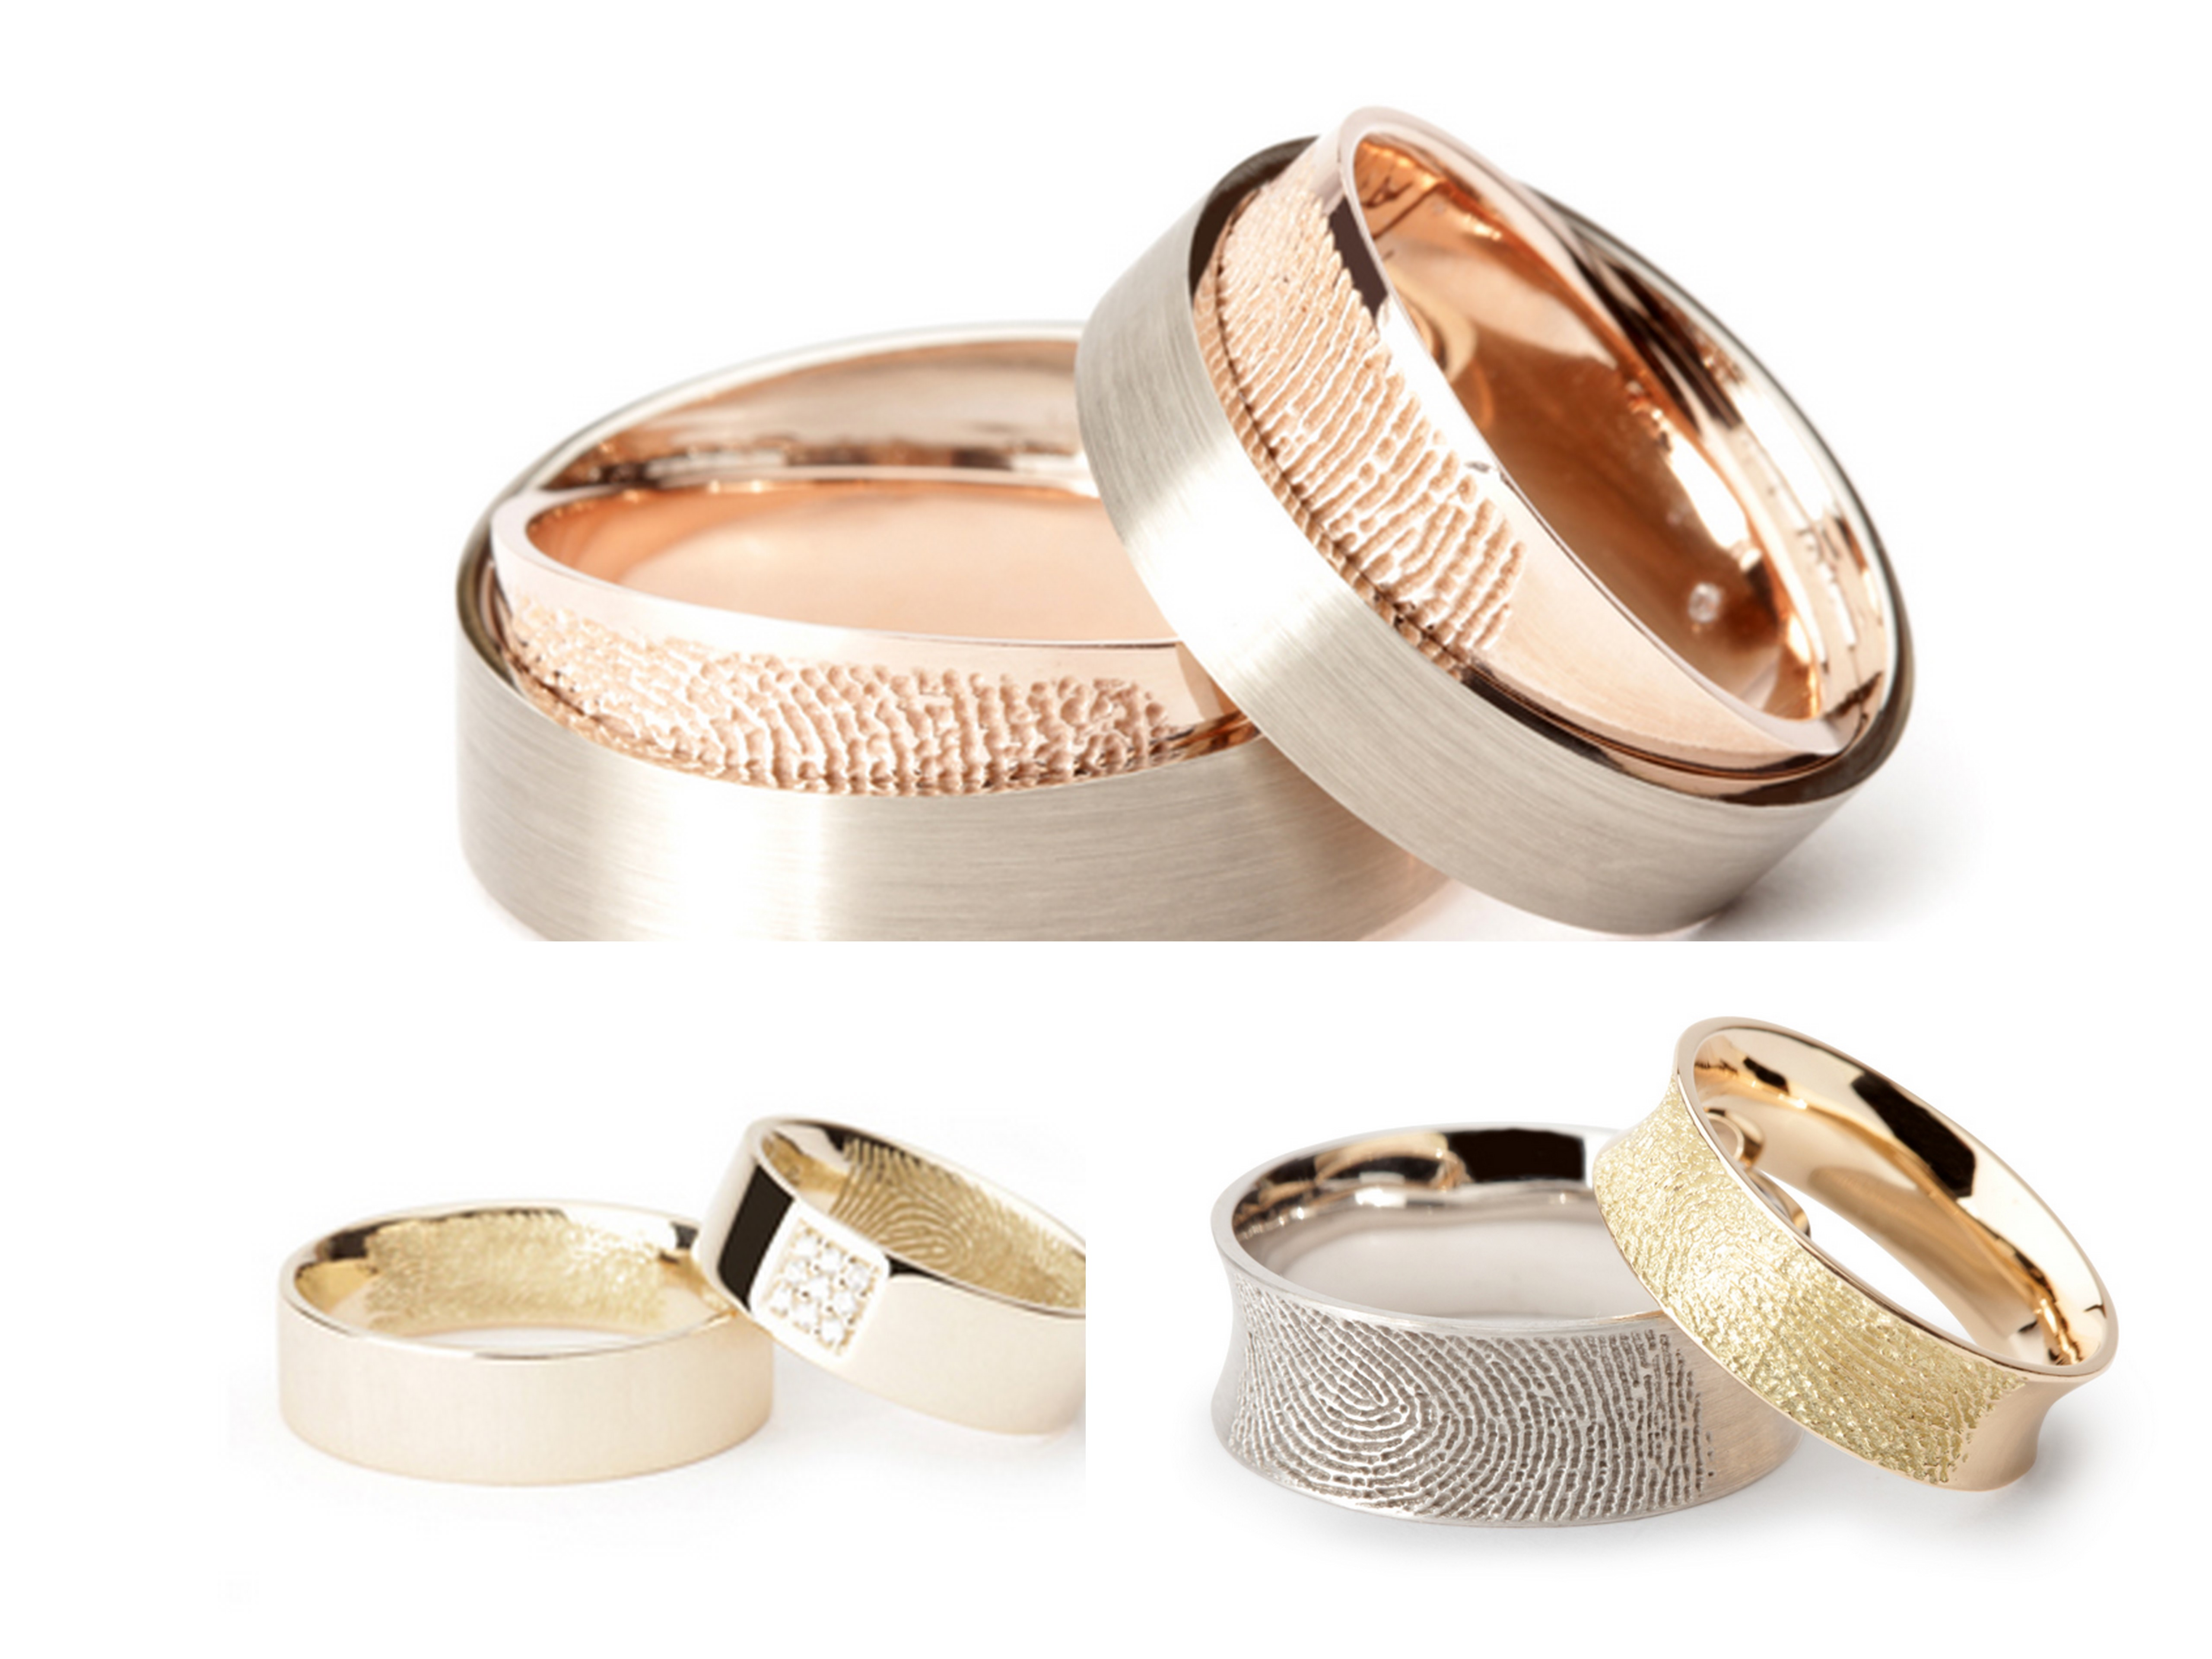 the rings please puzzle wedding rings The ring at the top the rose gold section slides out so the fingerprint is like a secret